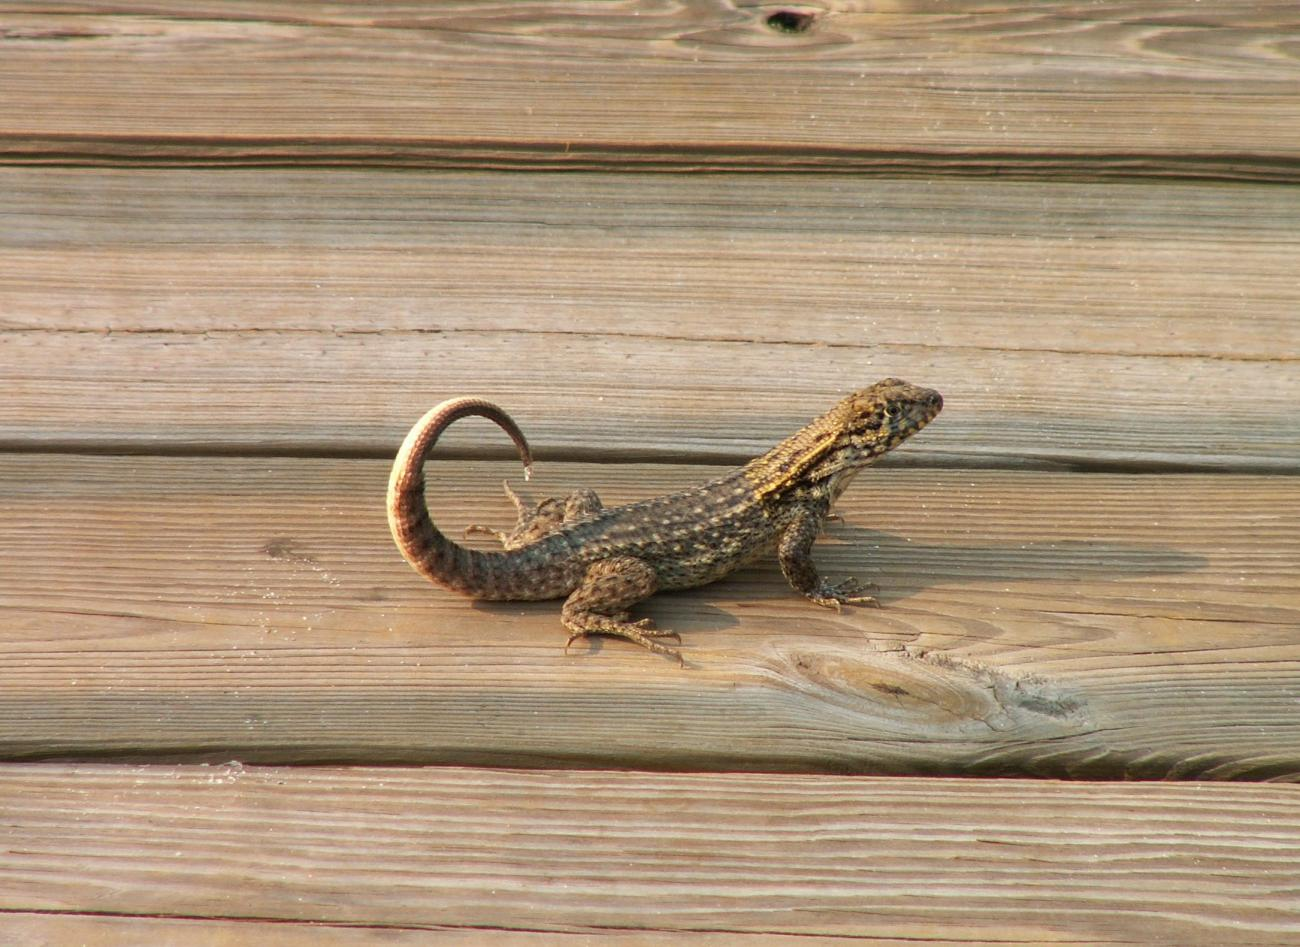 curly tail lizard for Clive (cfulton)